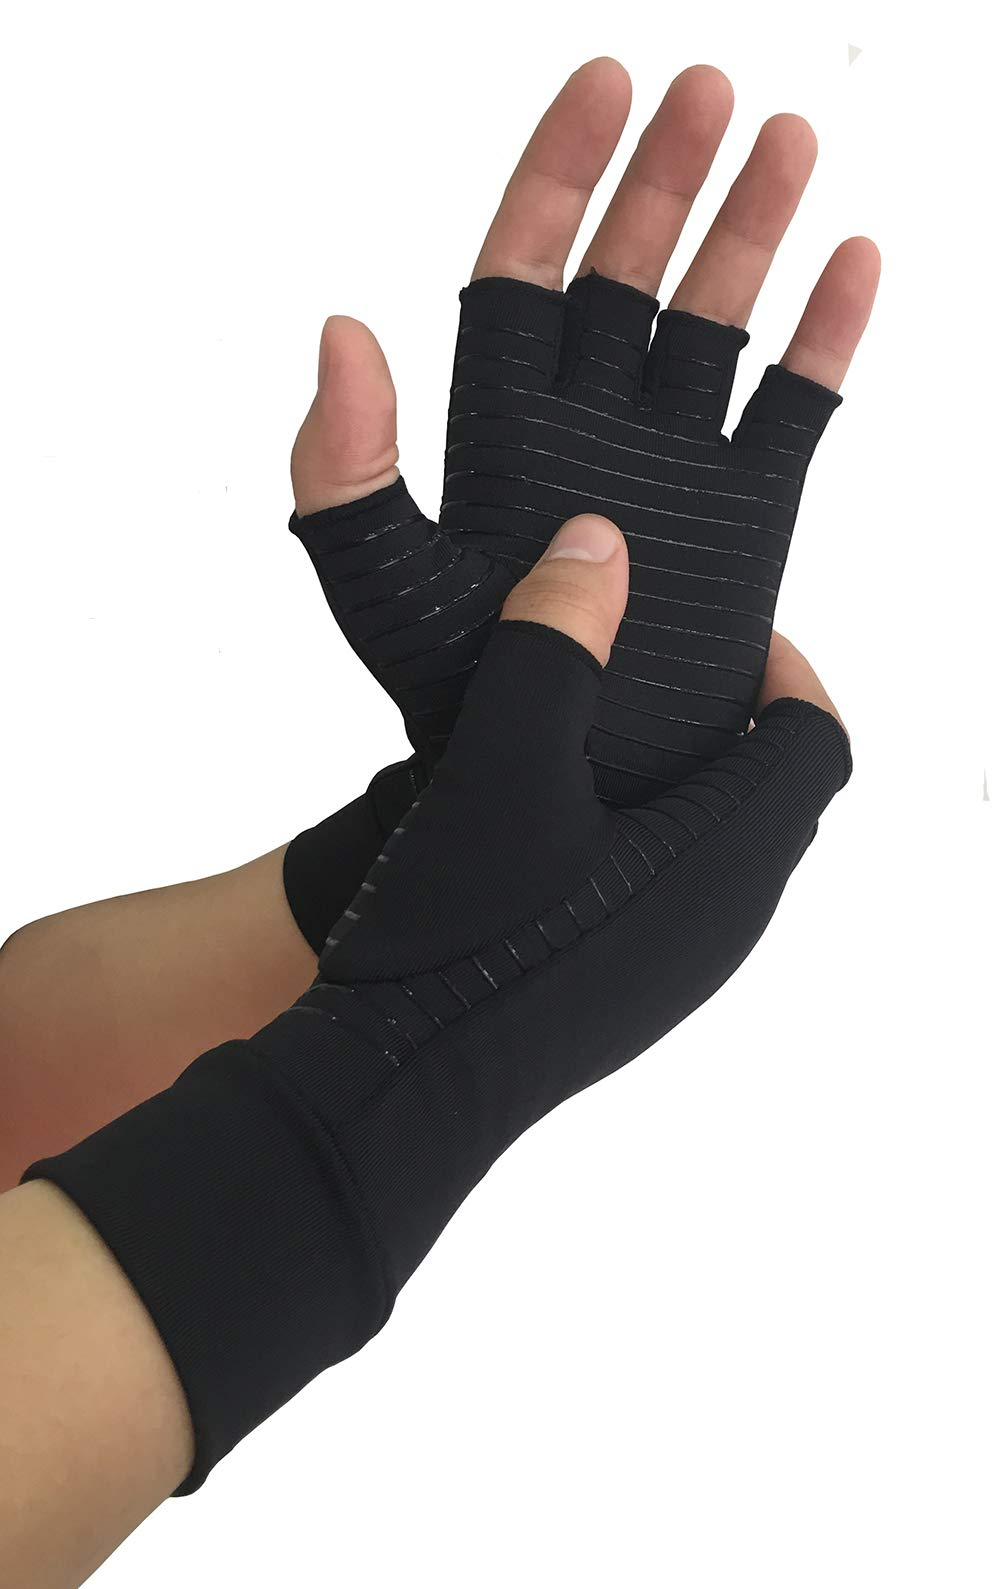 Copper Arthritis Gloves, Fingerless Compression Hand Gloves for Men and Women Relieving Rheumatoid, Osteoarthritis, Carpal Tunnel (M)